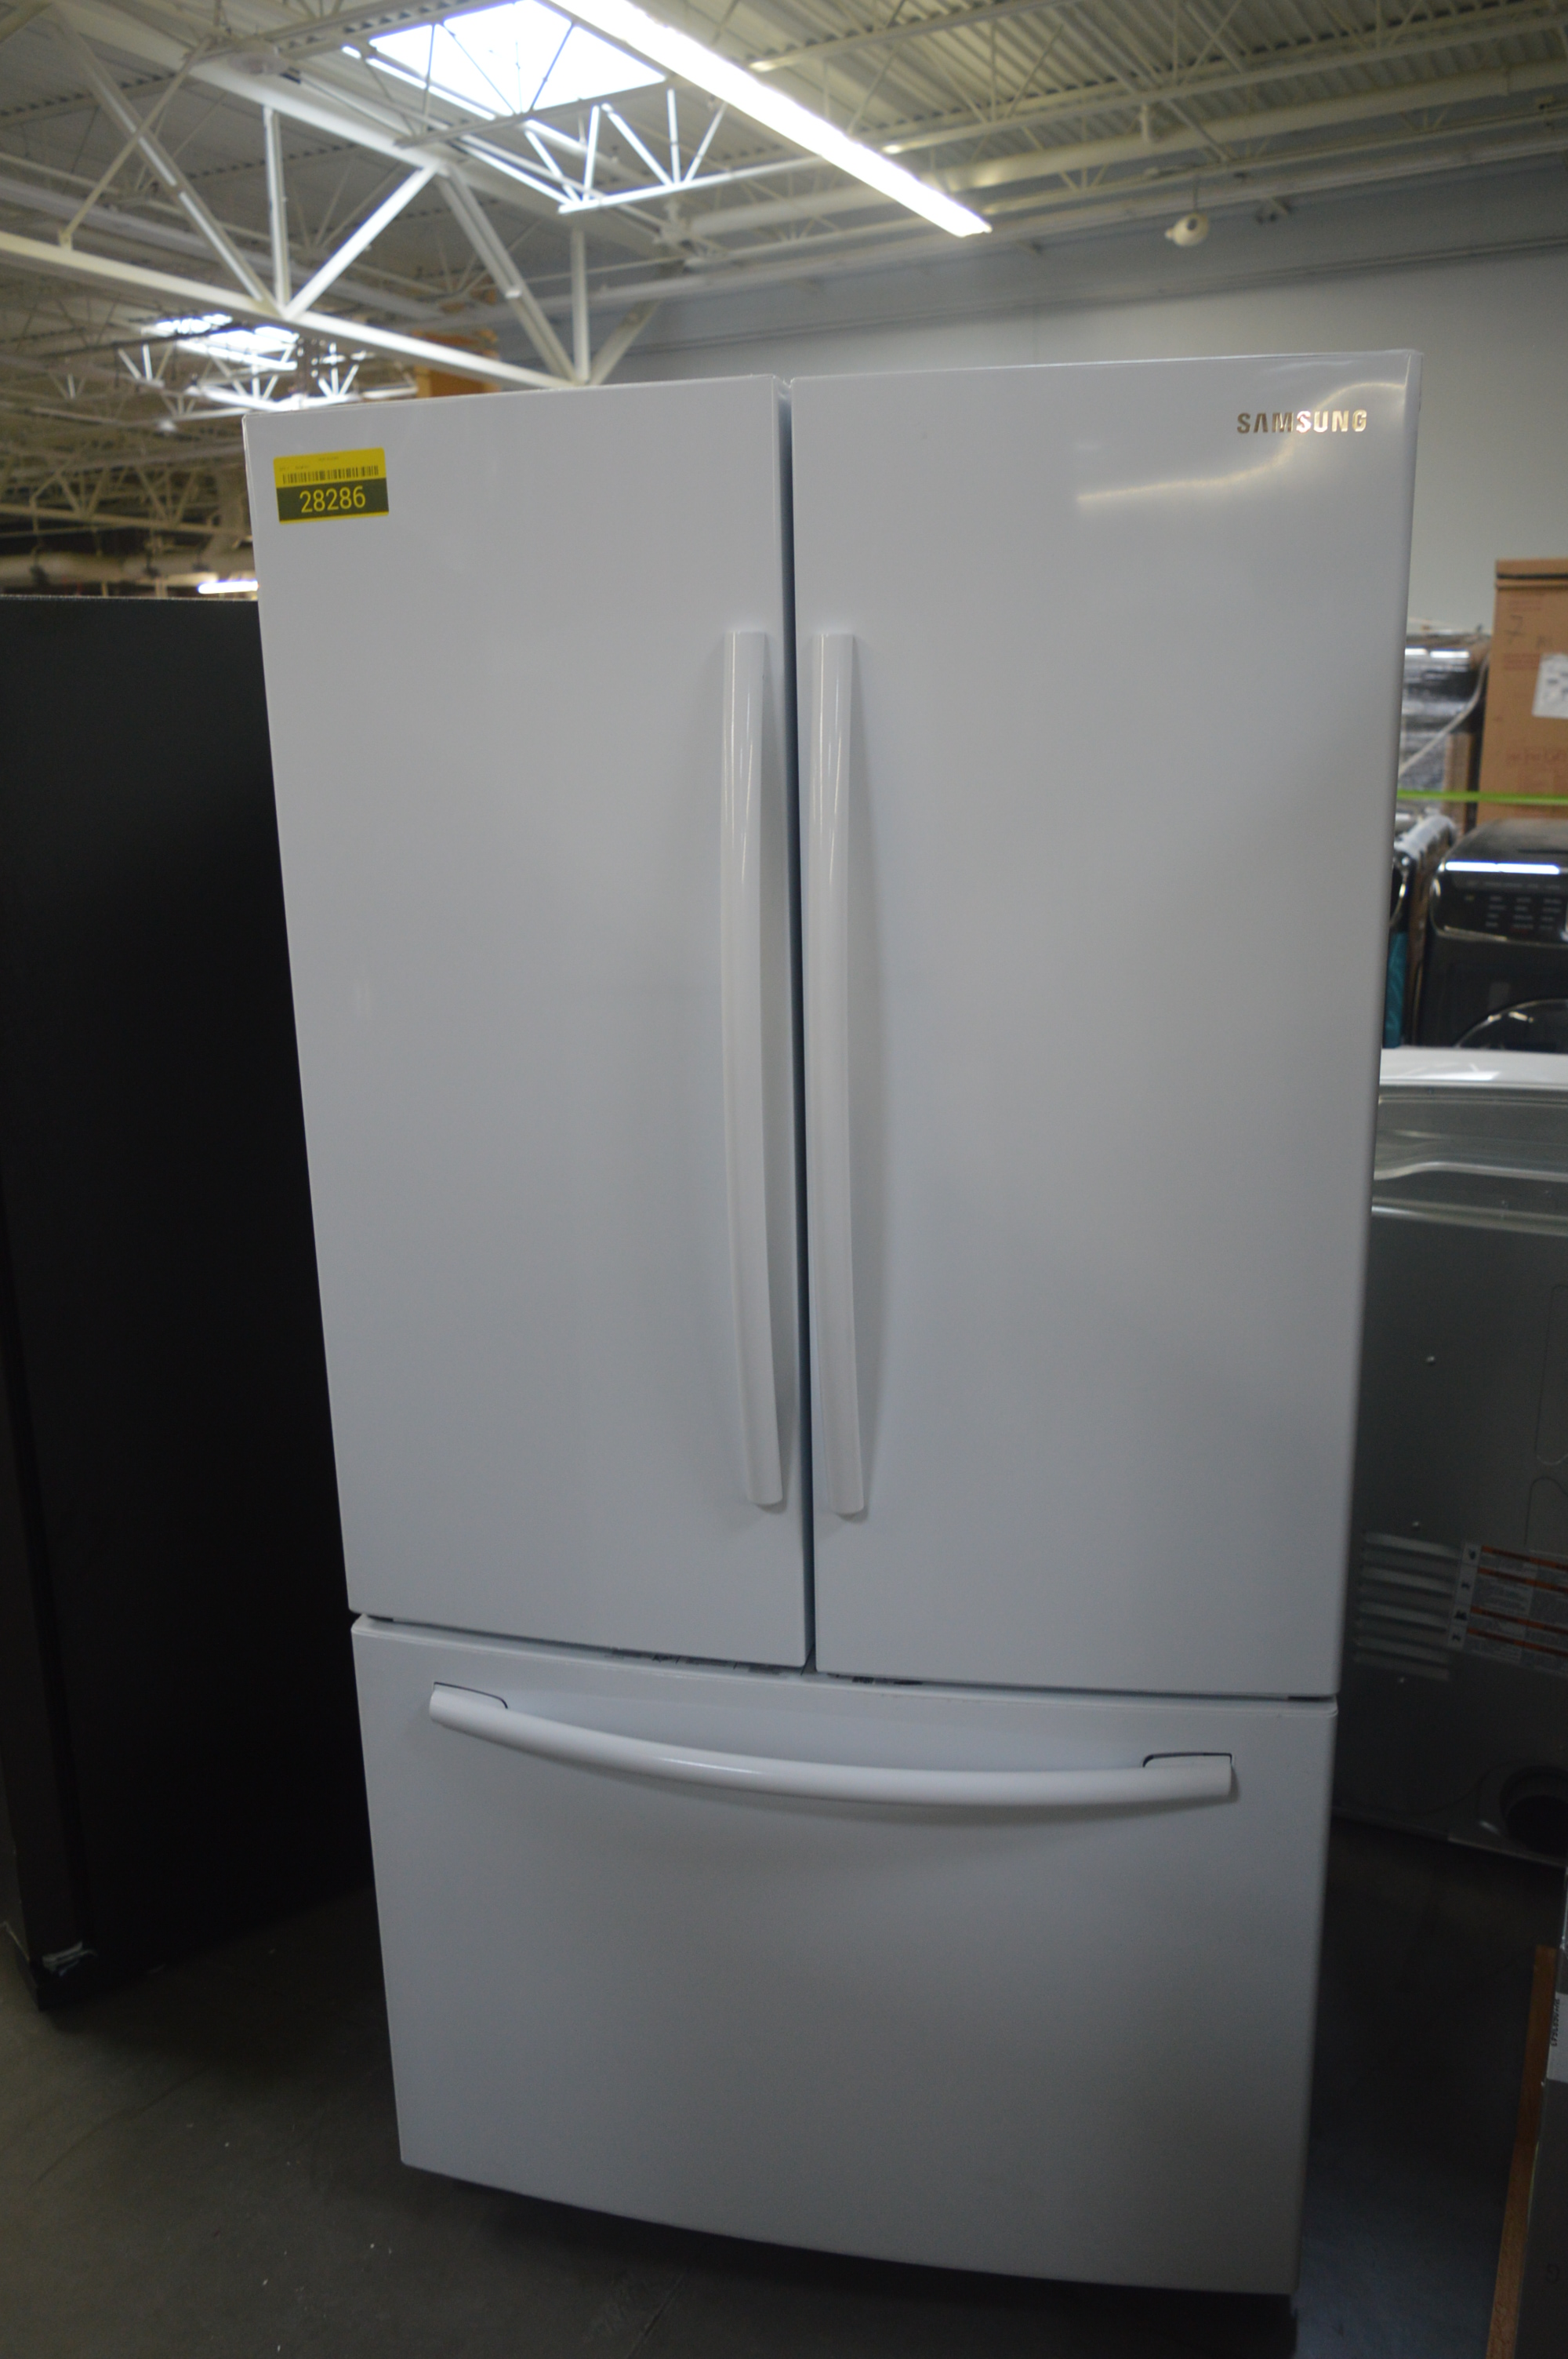 Samsung RF261BEAEWW French Door Refrigerator White